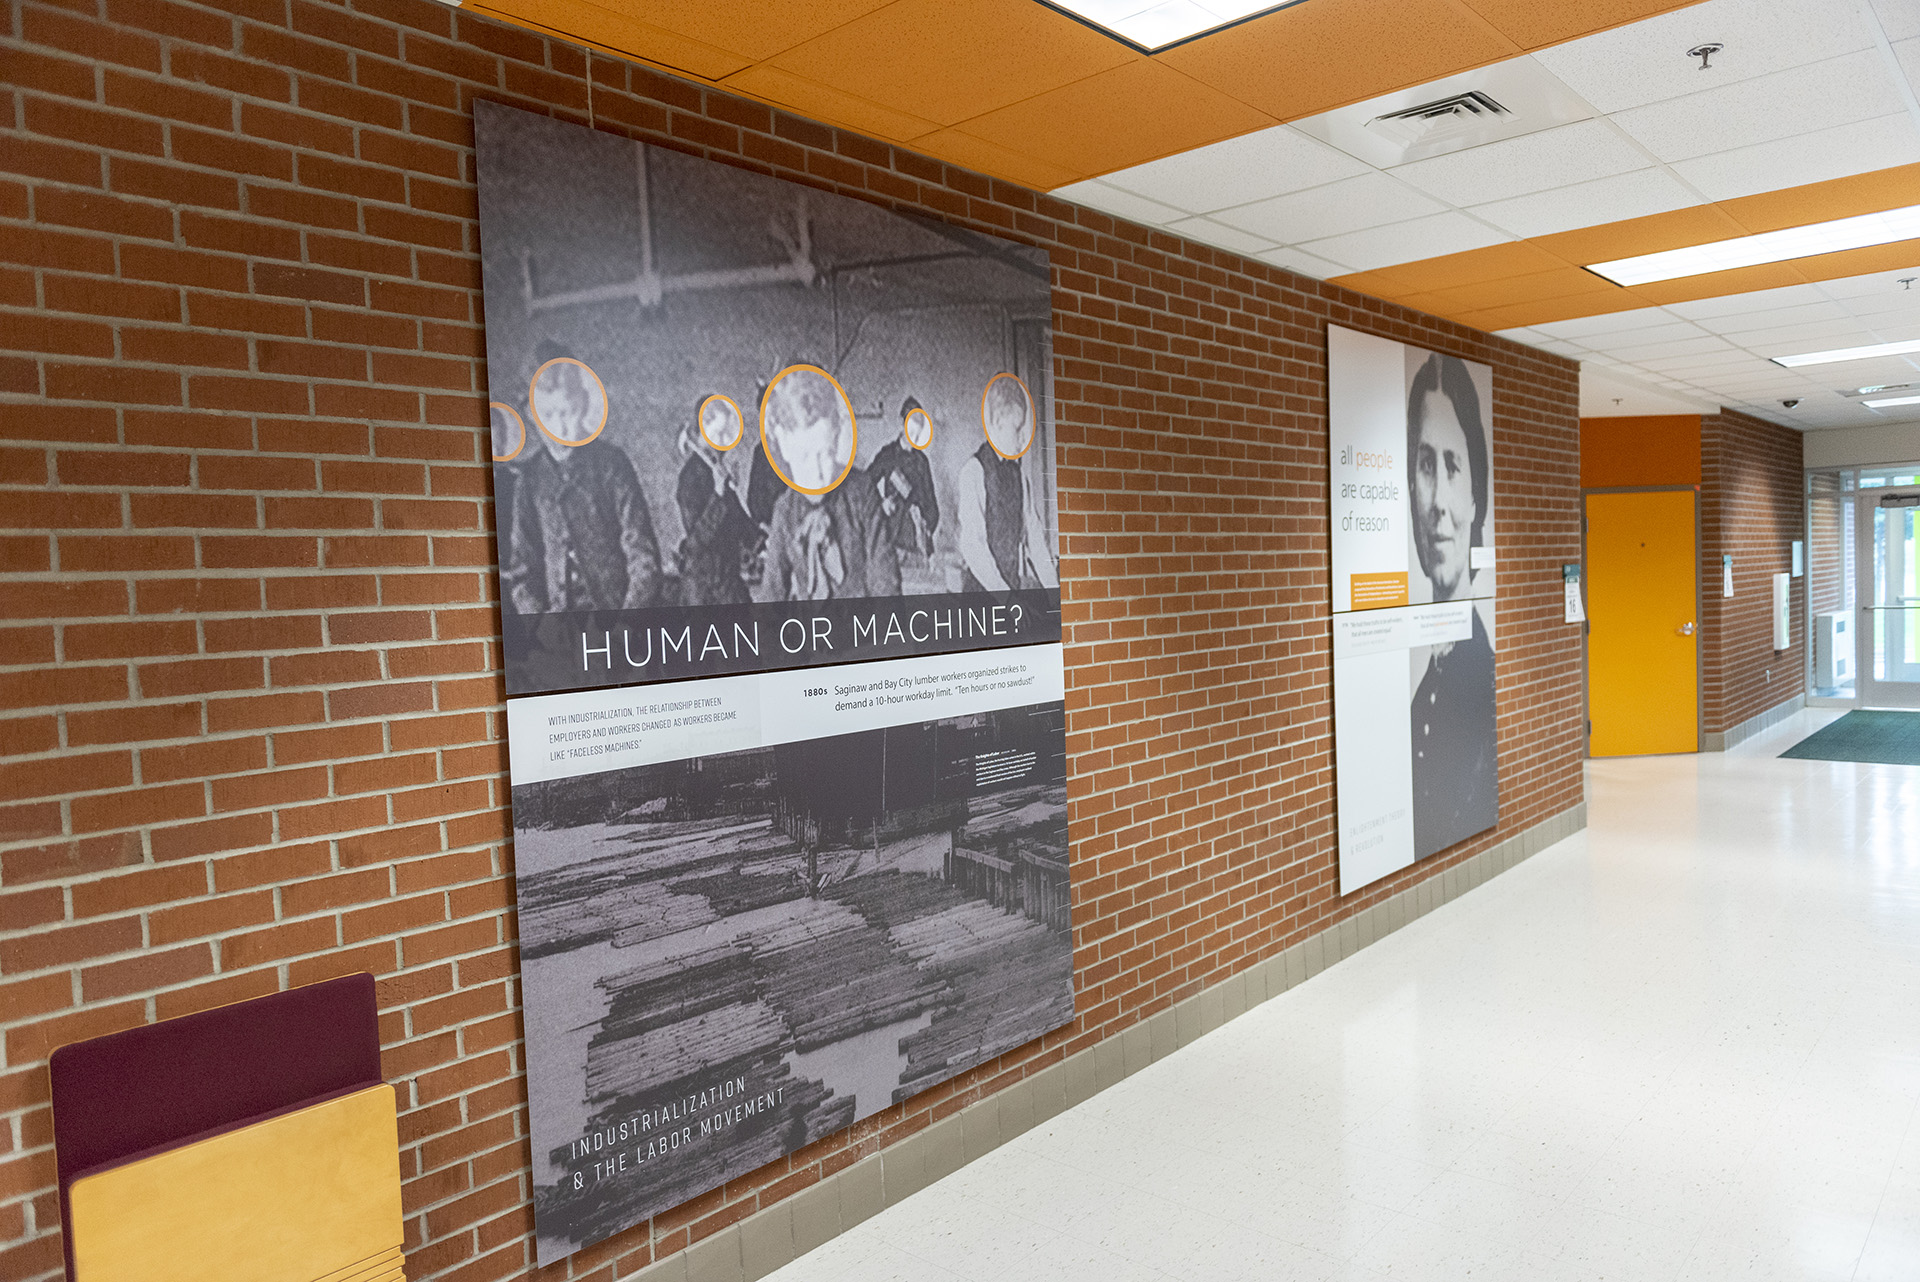 The J Wing hallway is sprinkled with historical facts and noteworthy information.